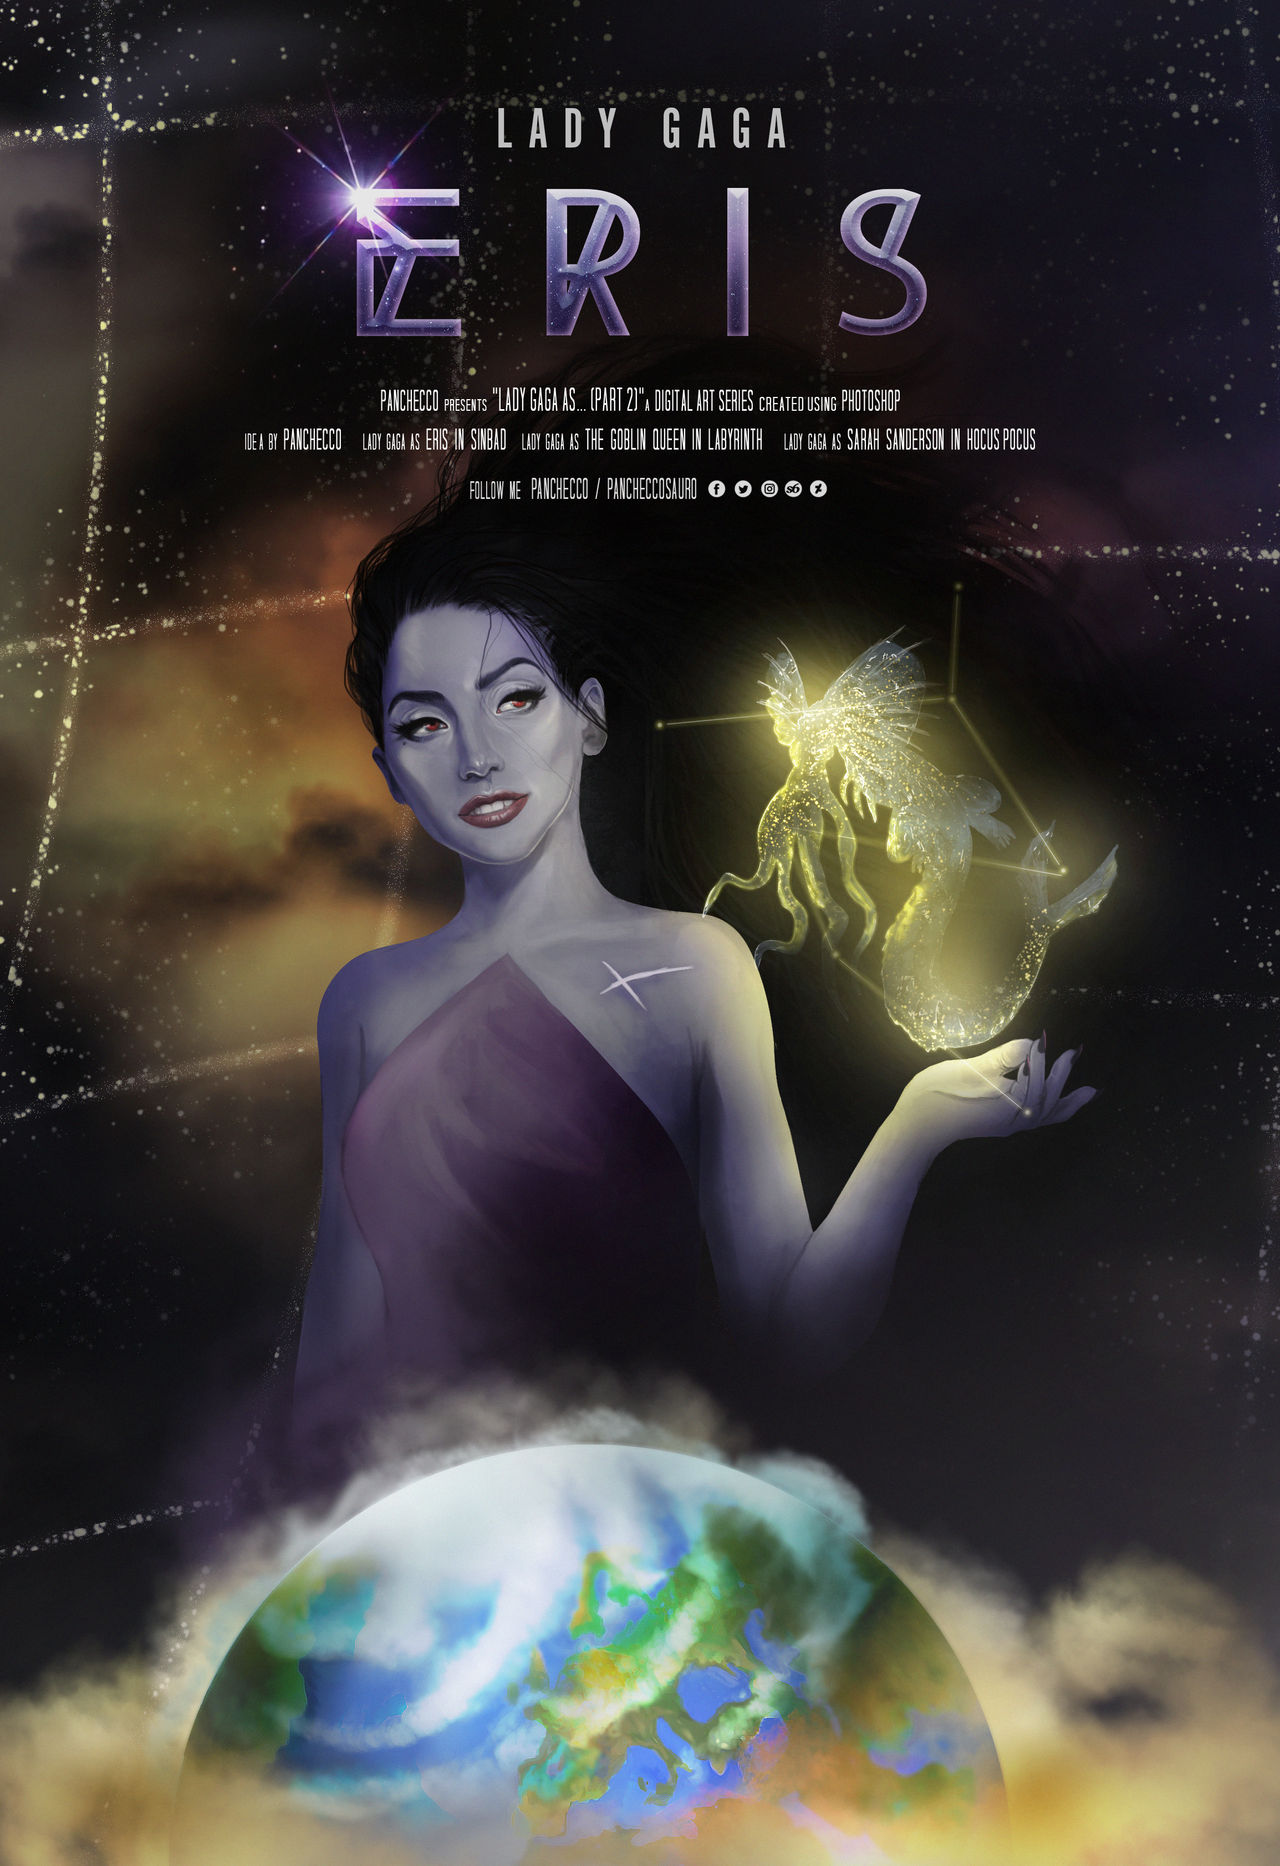 lady_gaga_as_eris__character_poster__by_